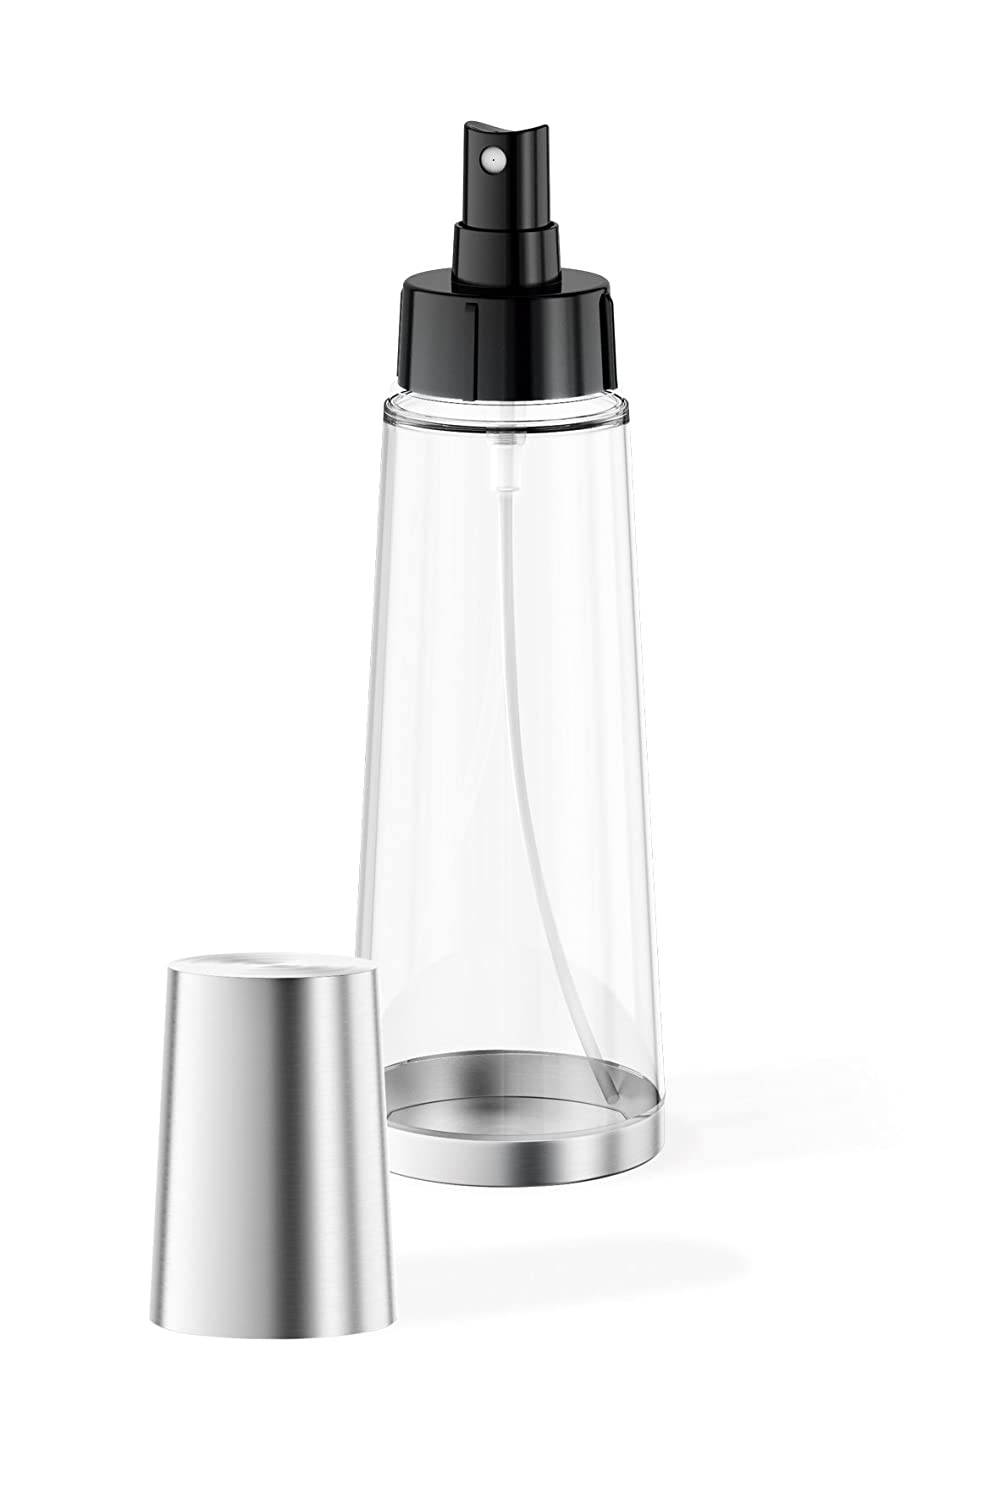 7.5 by 2.17-Inch ZACK 20224 Aceo 6.25-Ounce Oil//Vinegar Dispenser